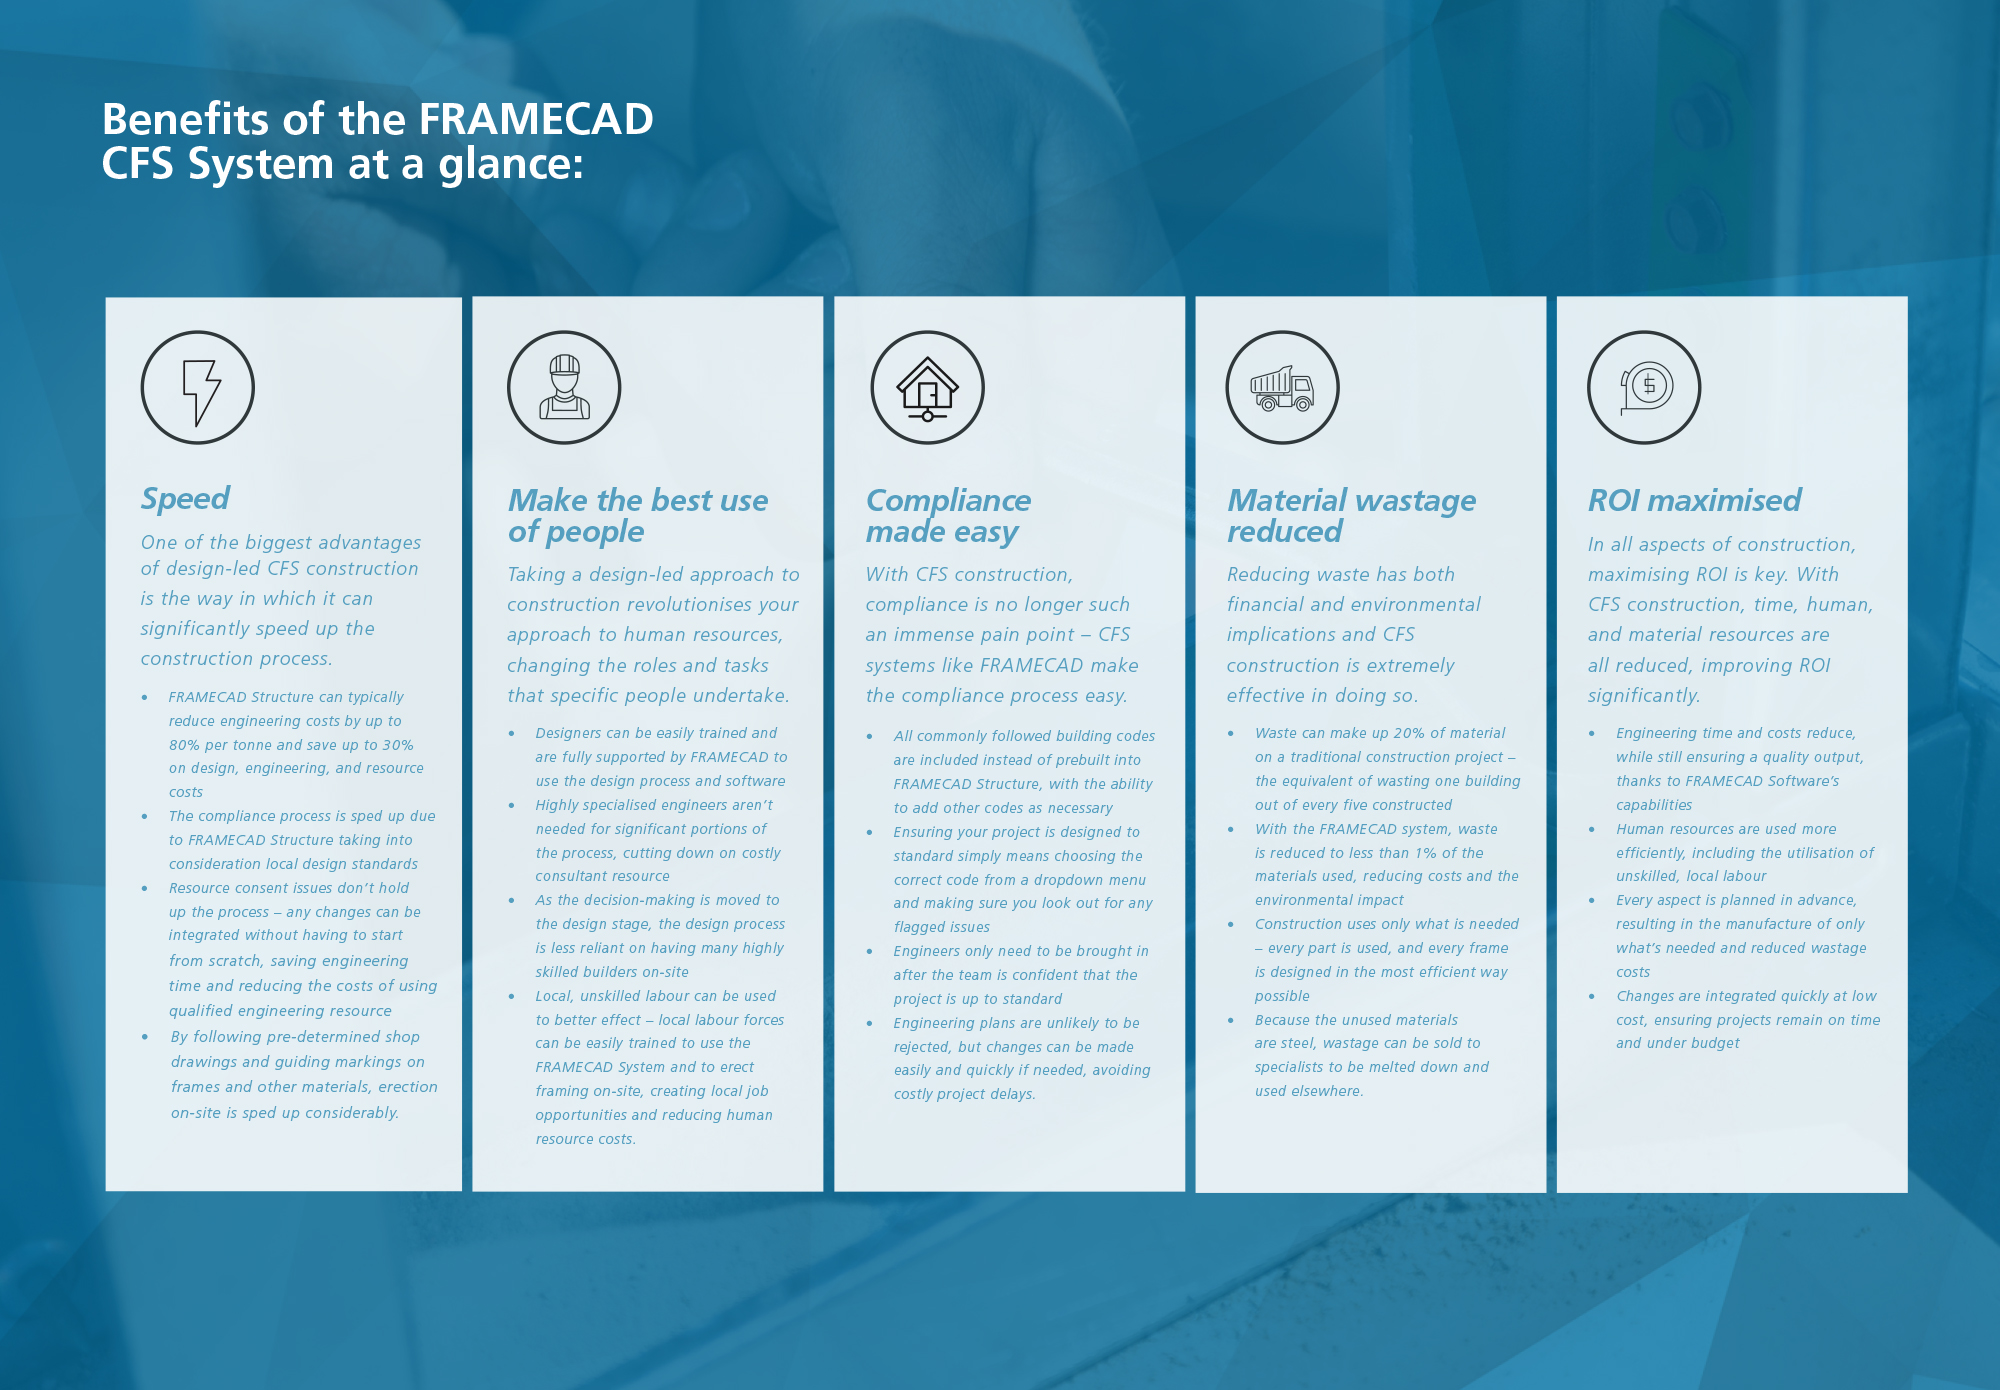 Benefits of FRAMECAD_MAY19-1